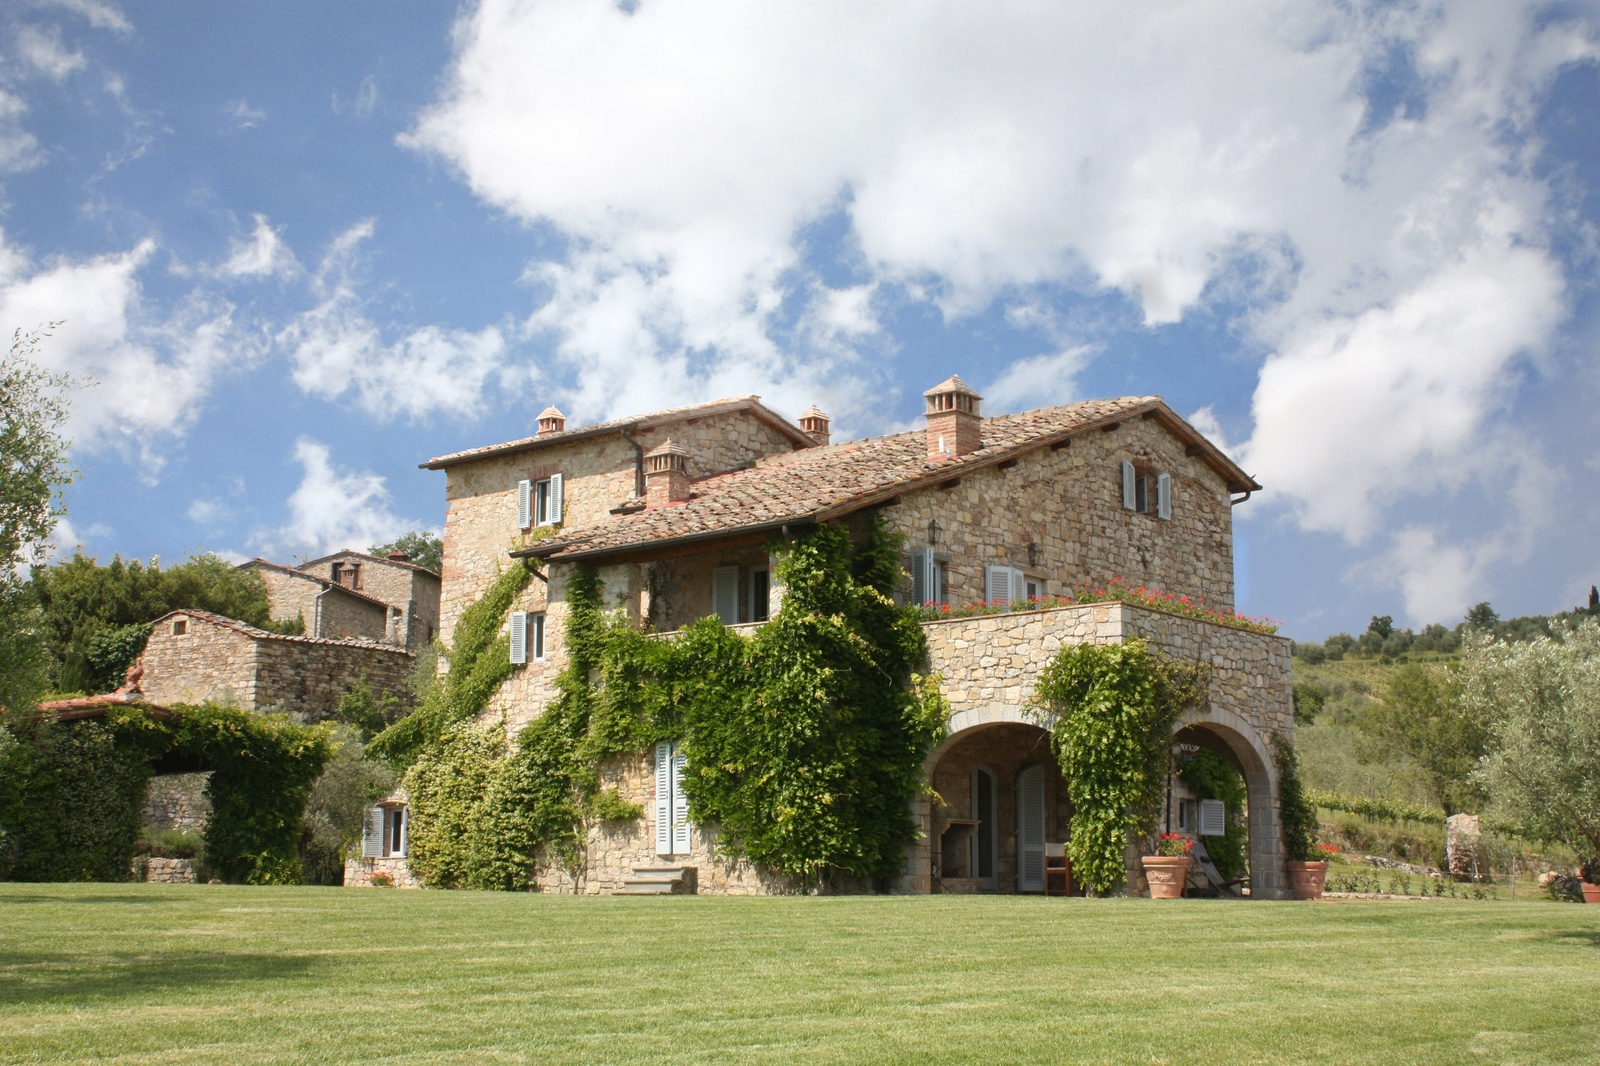 Maison En Toscane Casa In Toscana Real Estate Agency In Tuscany Casa In